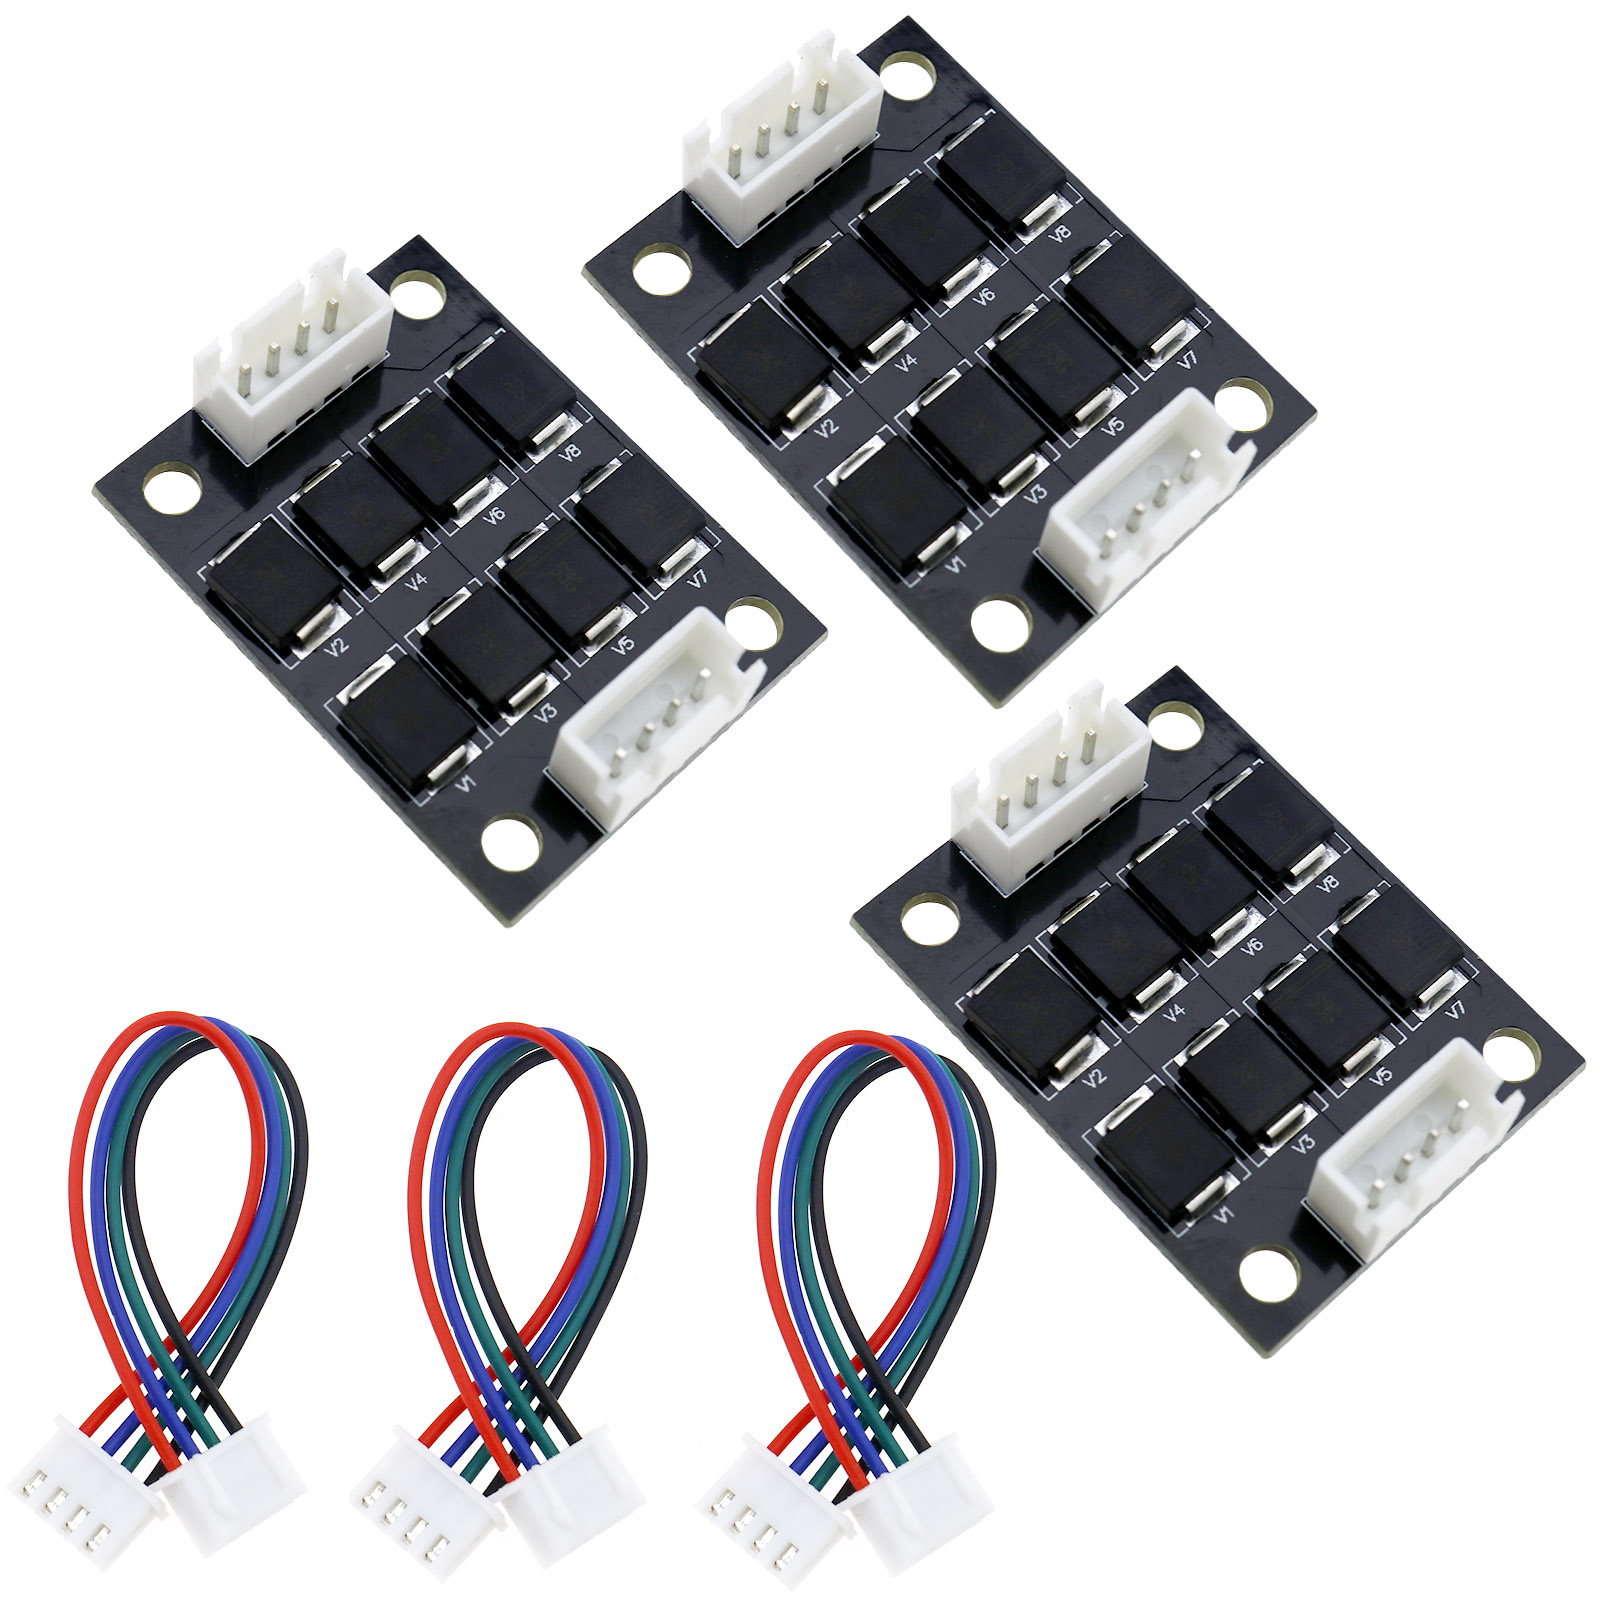 TL-Smoother Addon Module for 3D Printer Stepper Motor Drivers Accessories